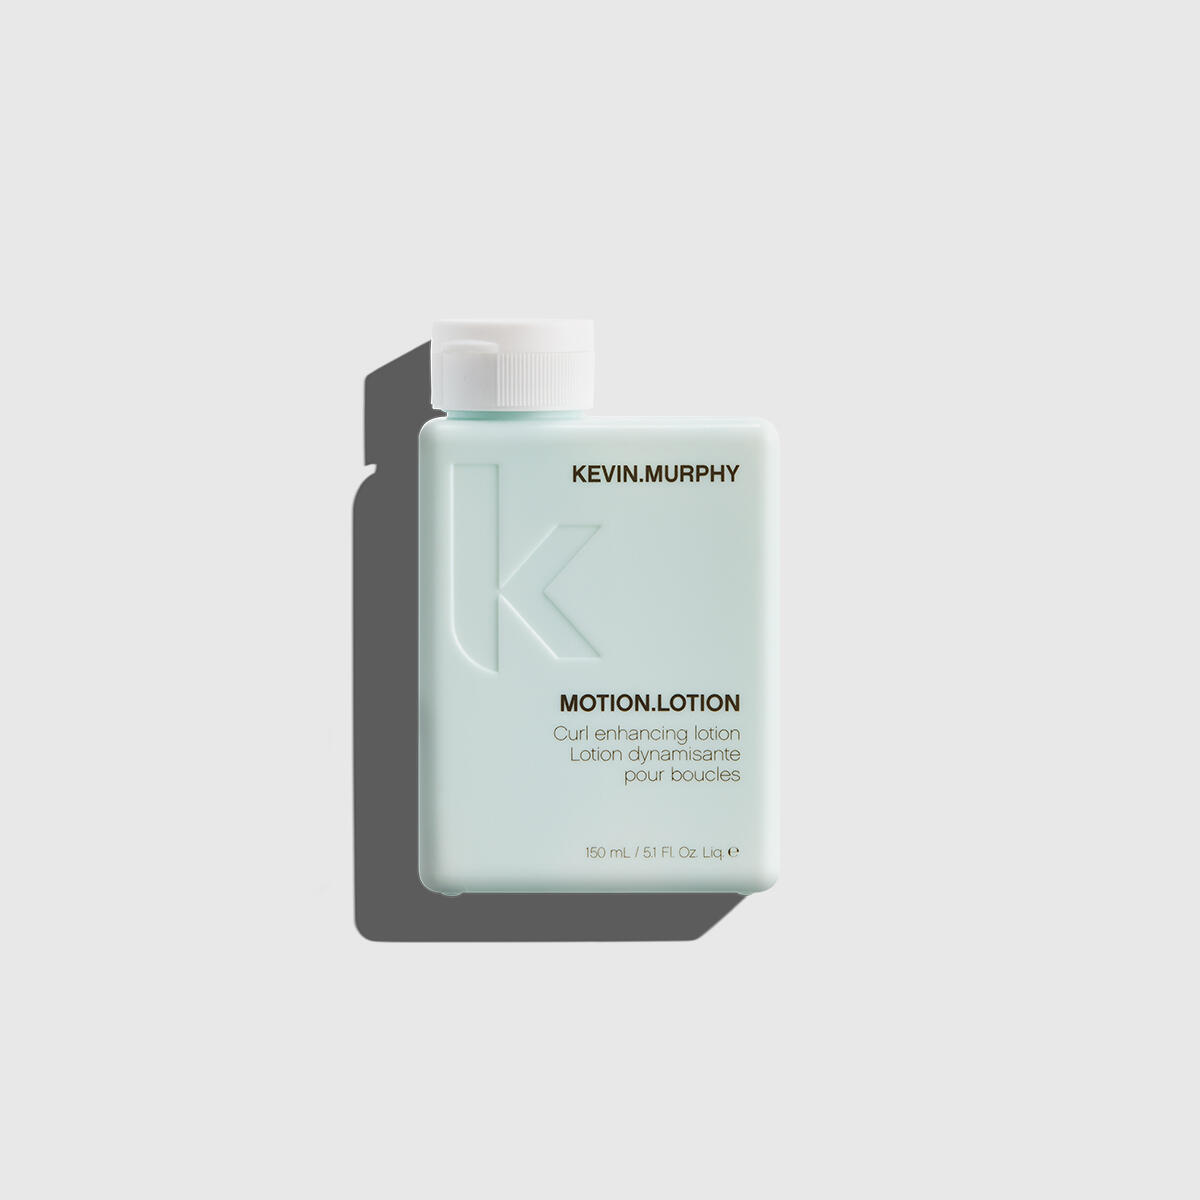 Kevin Murphy Motion Lotion null